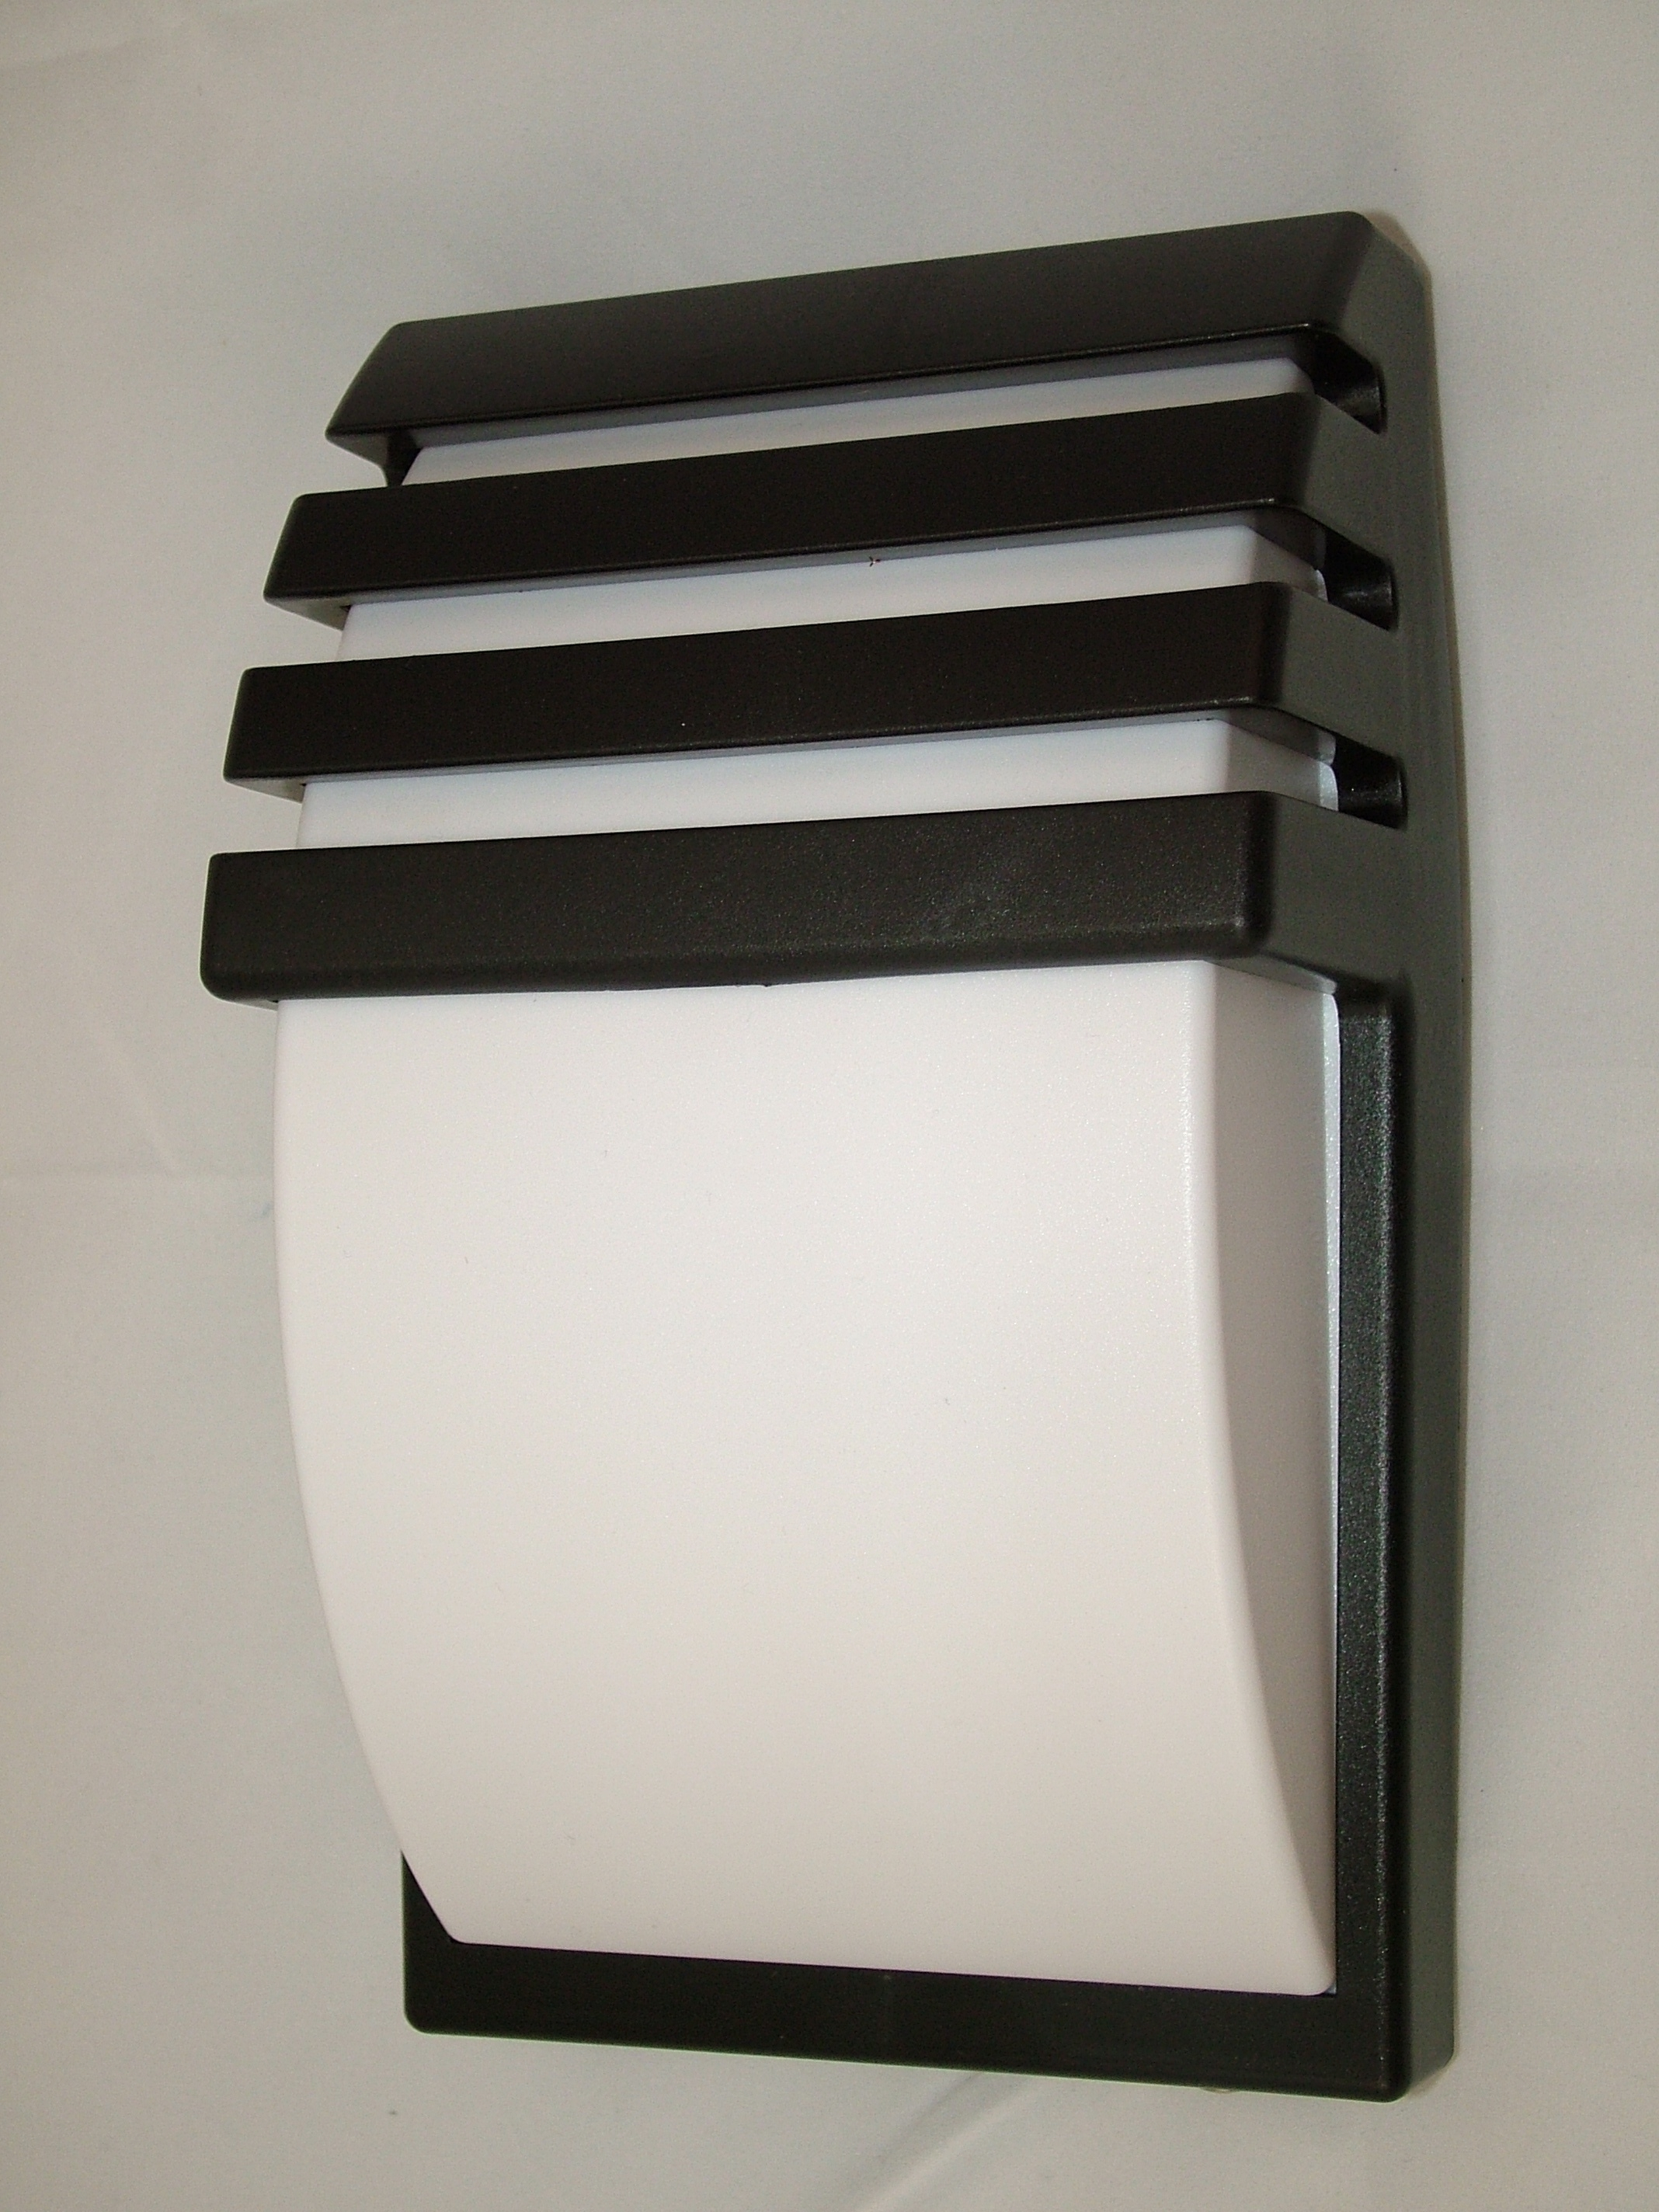 Best And Newest Large Outdoor Modern Wall Mounted Lighting Fixtures With Black Pertaining To Large Outdoor Wall Light Fixtures (View 15 of 20)